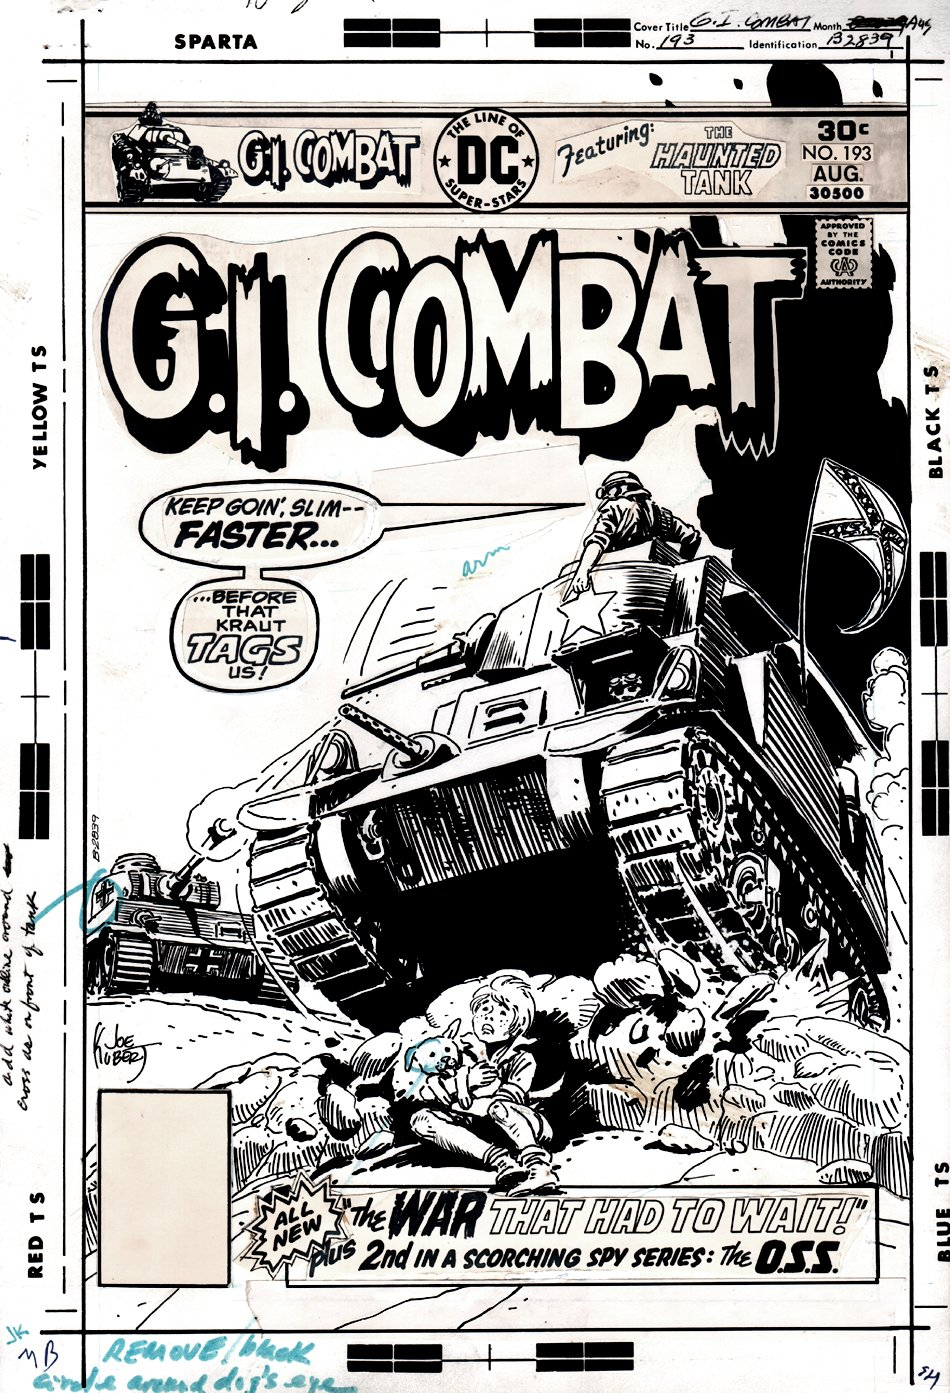 G.I. Combat #193 Cover (THE HAUNTED TANK!) 1976